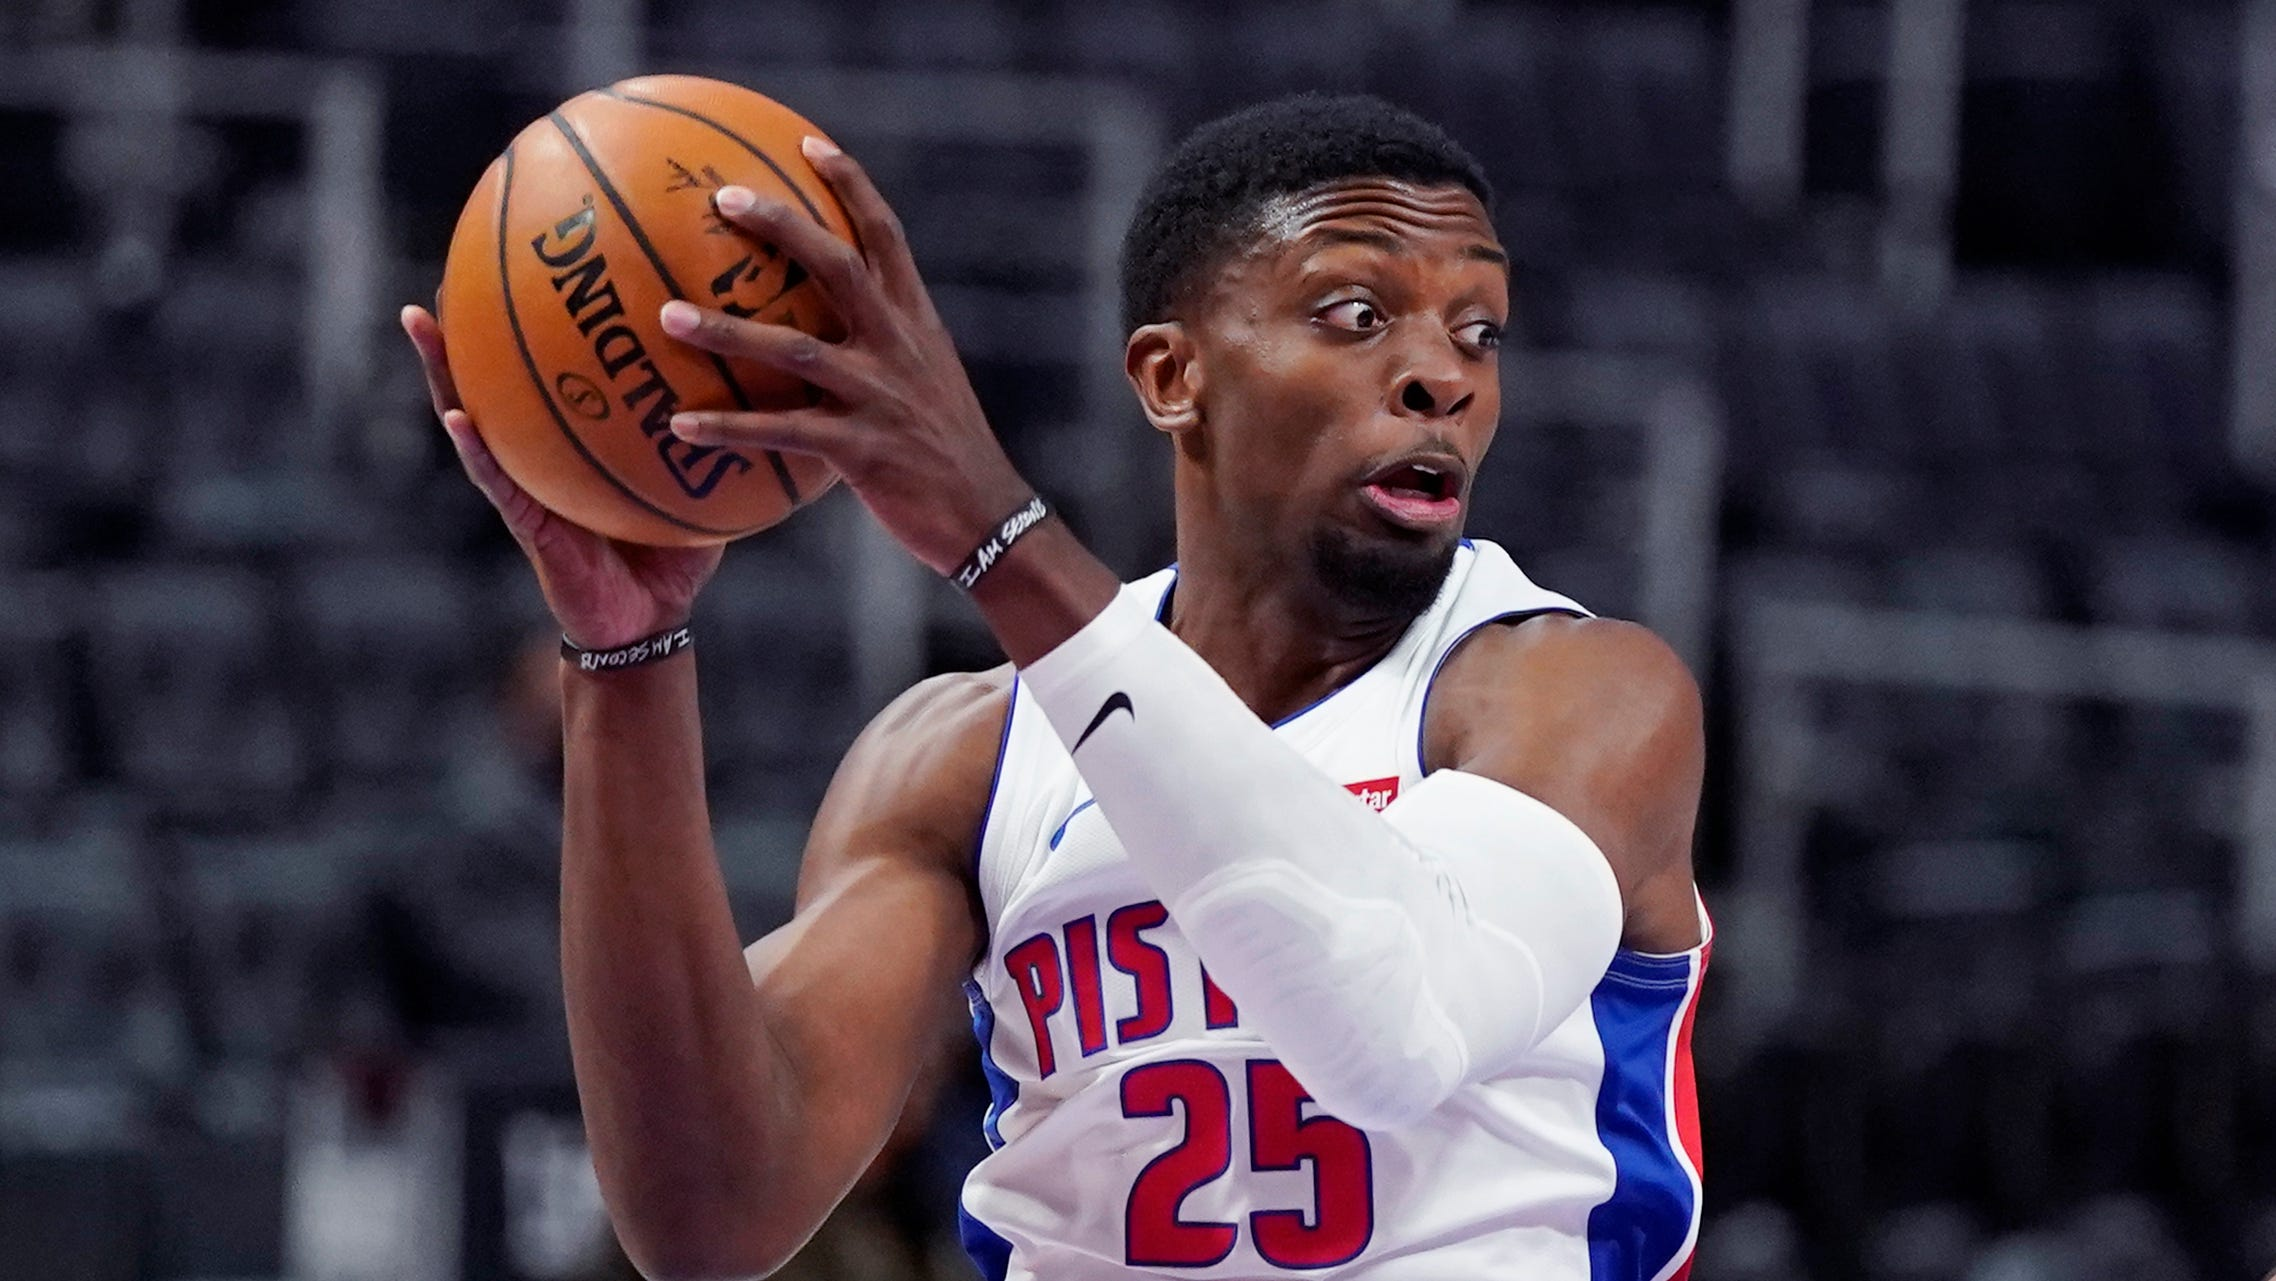 Detroit Pistons forward Tyler Cook looks to pass during the second half of an NBA basketball game against the Portland Trail Blazers, Wednesday, March 31, 2021, in Detroit.